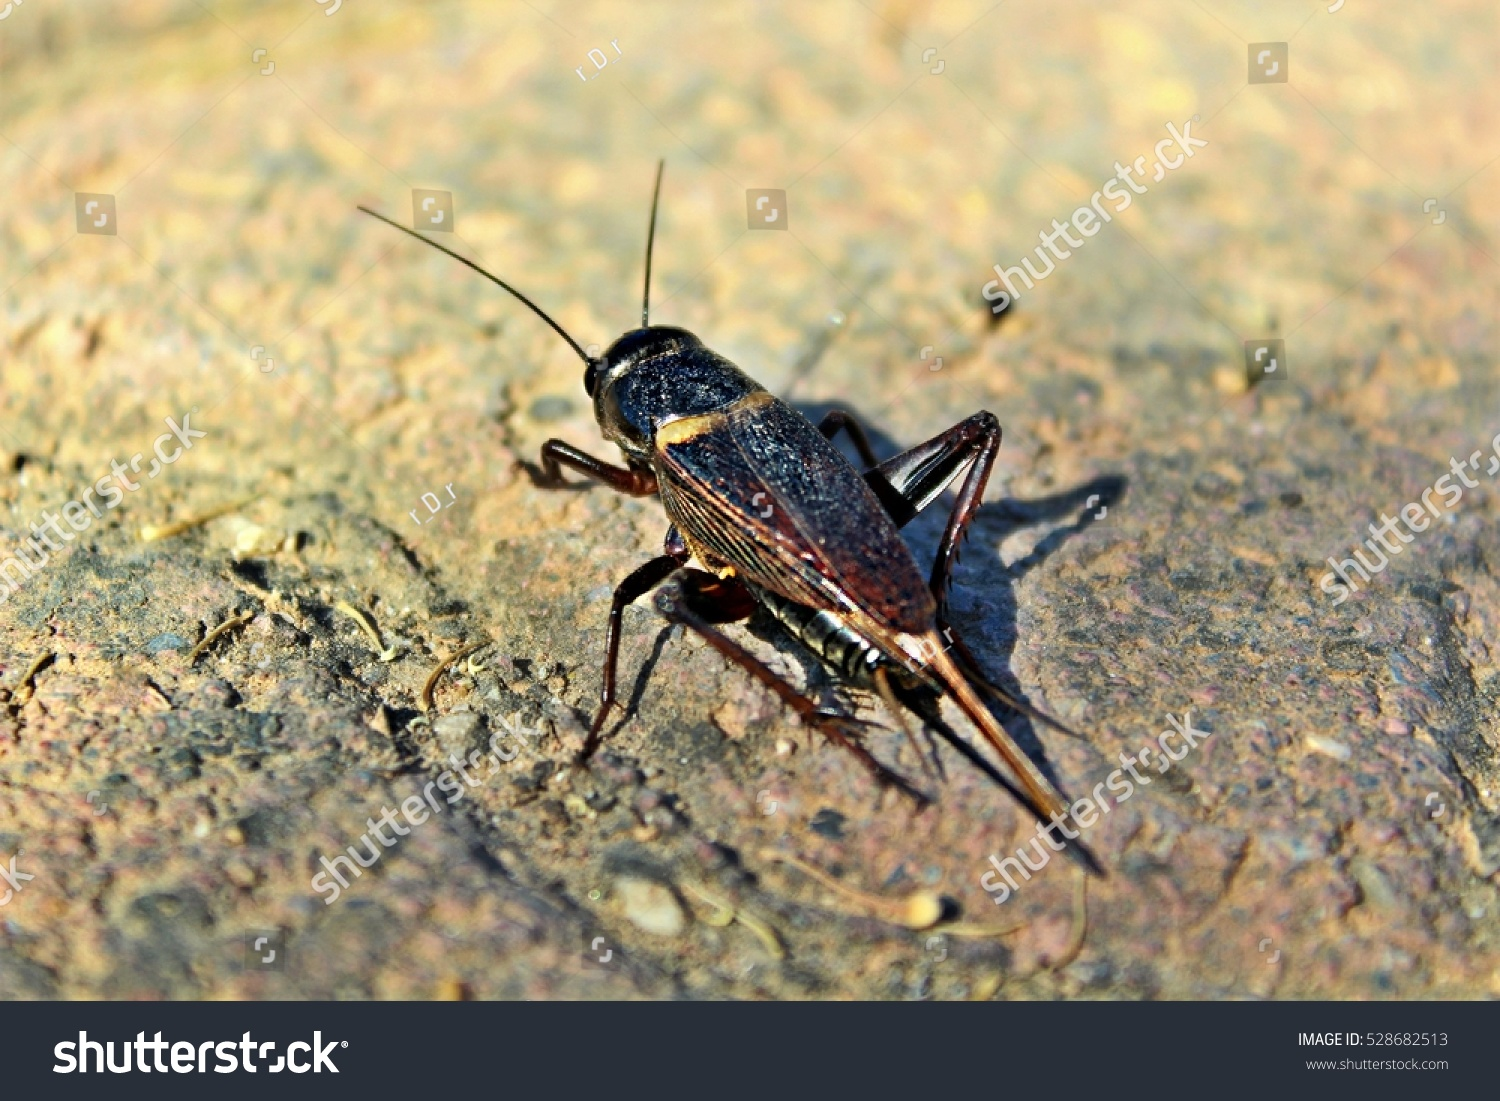 stock-photo-insect-528682513.jpg